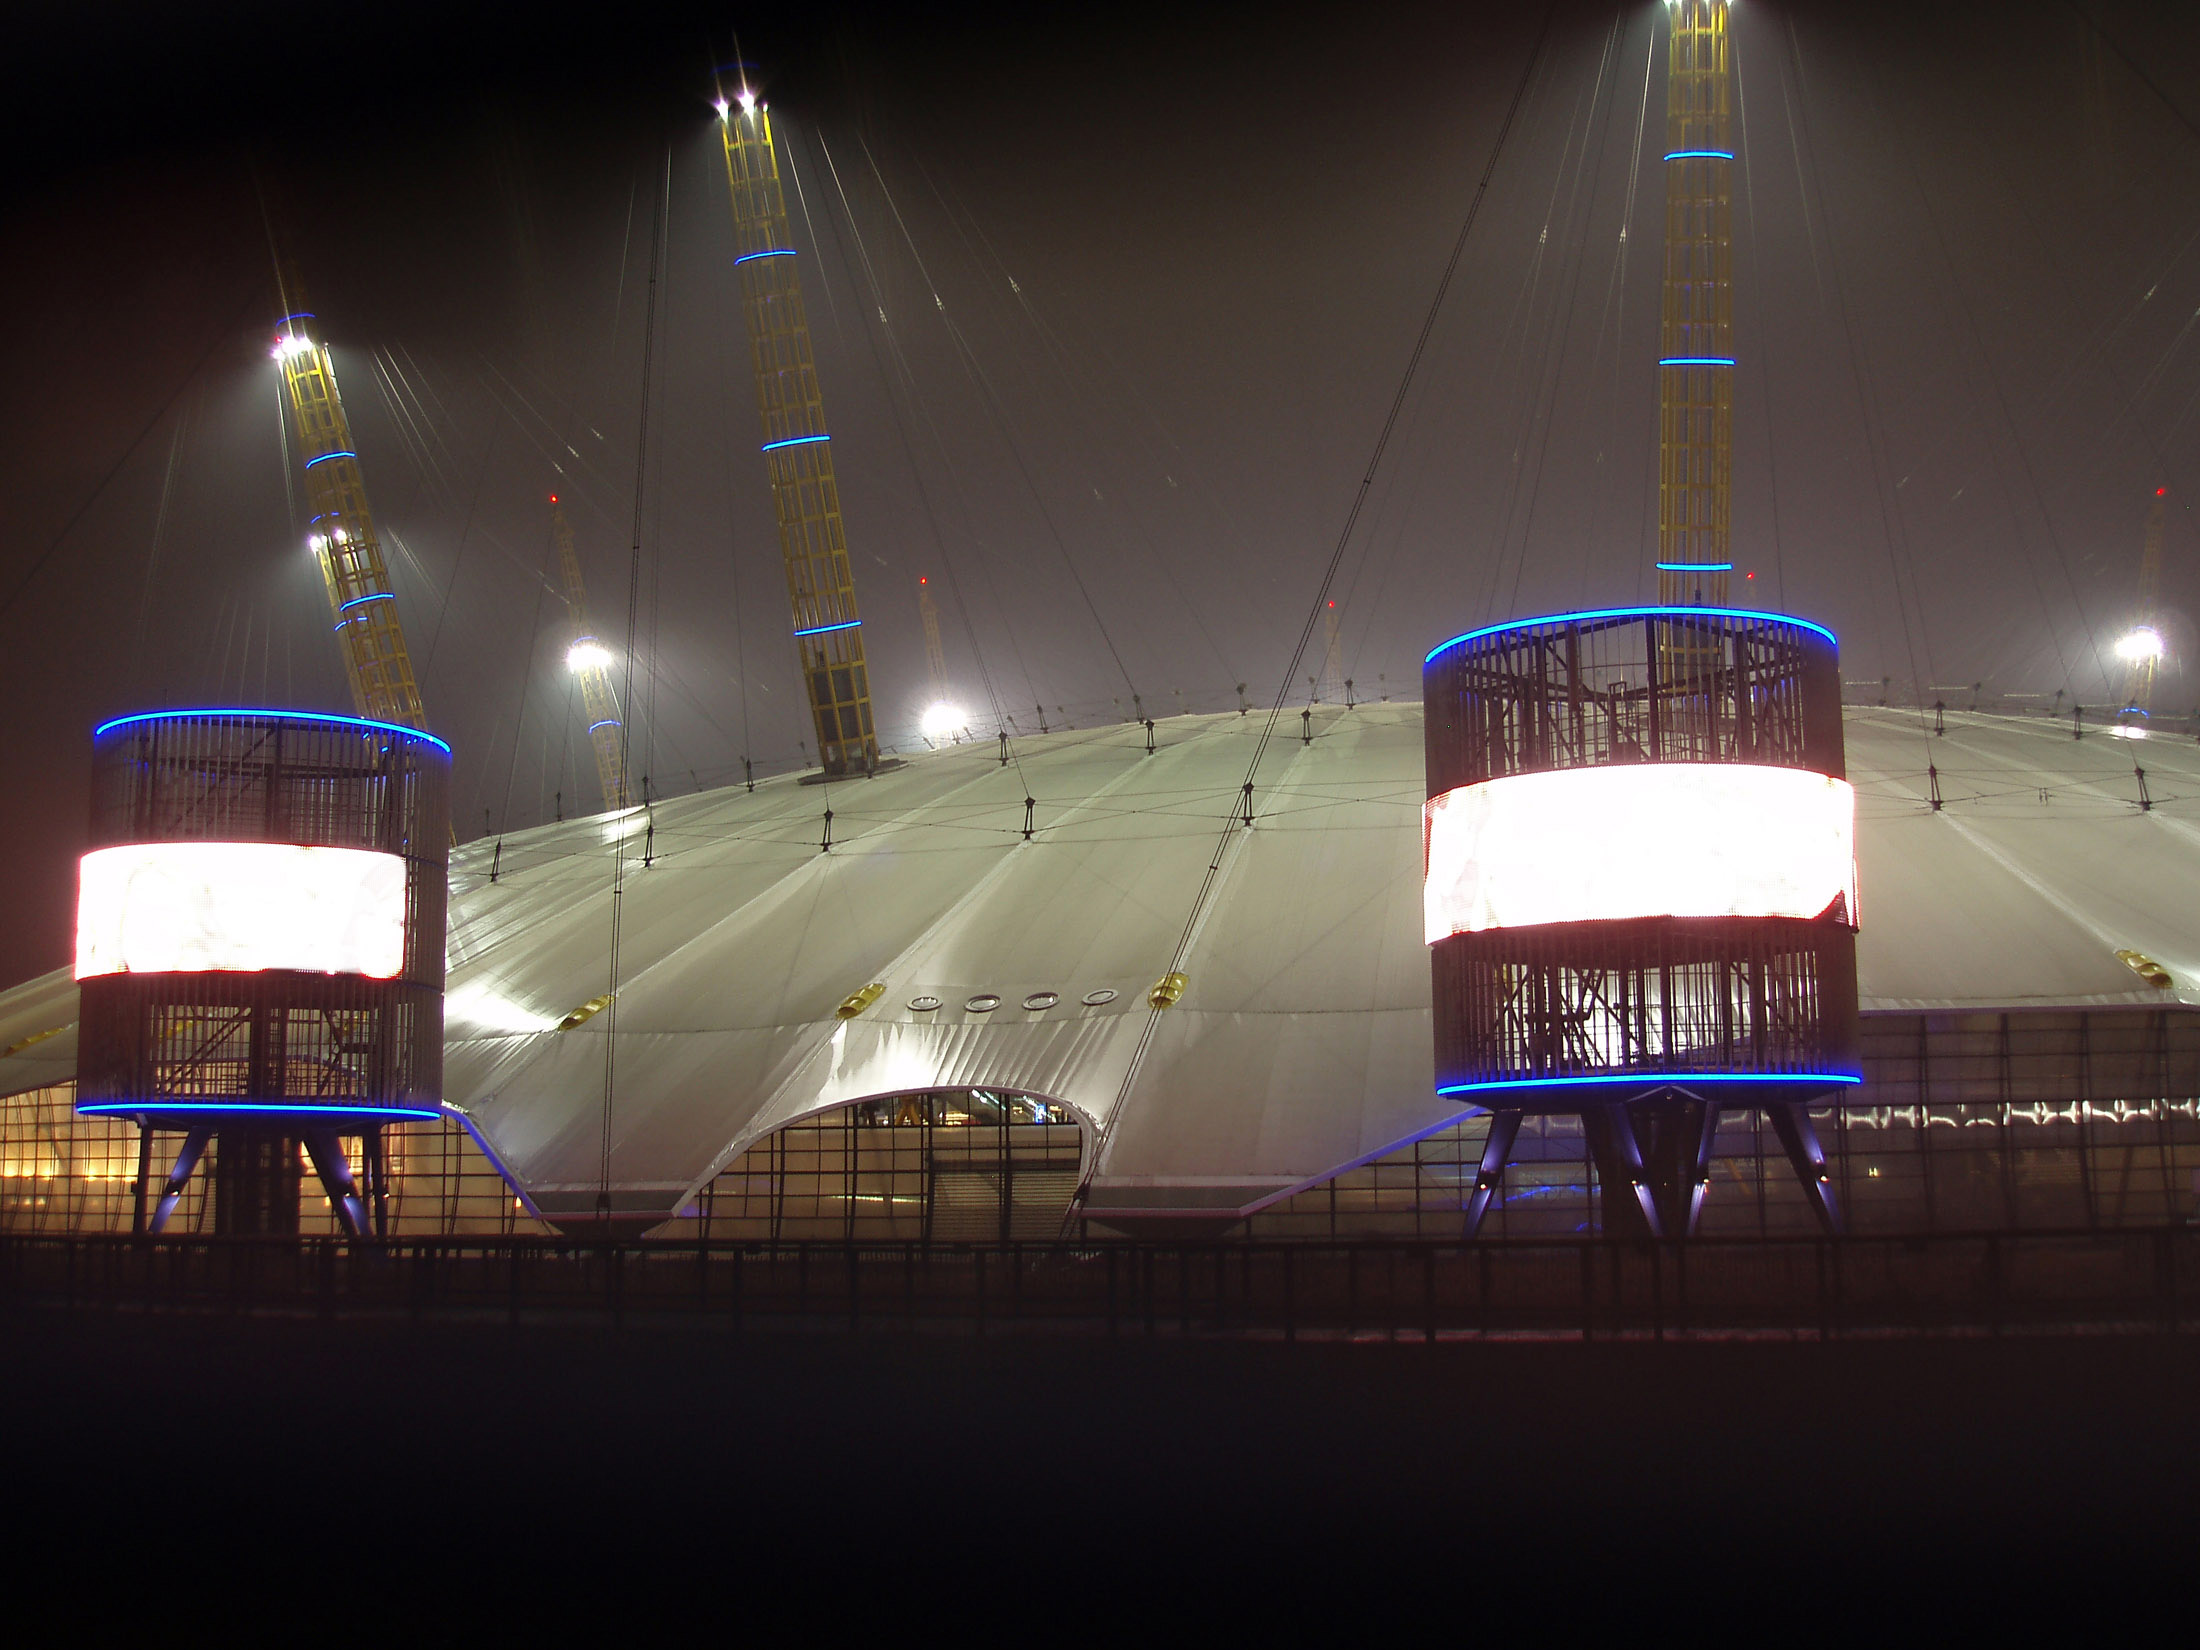 The Millennium Dome or The O2 on the Greenwich peninsula, London is a modern arena and the largest dome originally built to house exhibitions to commemorate the Millennium seen illuminated at night